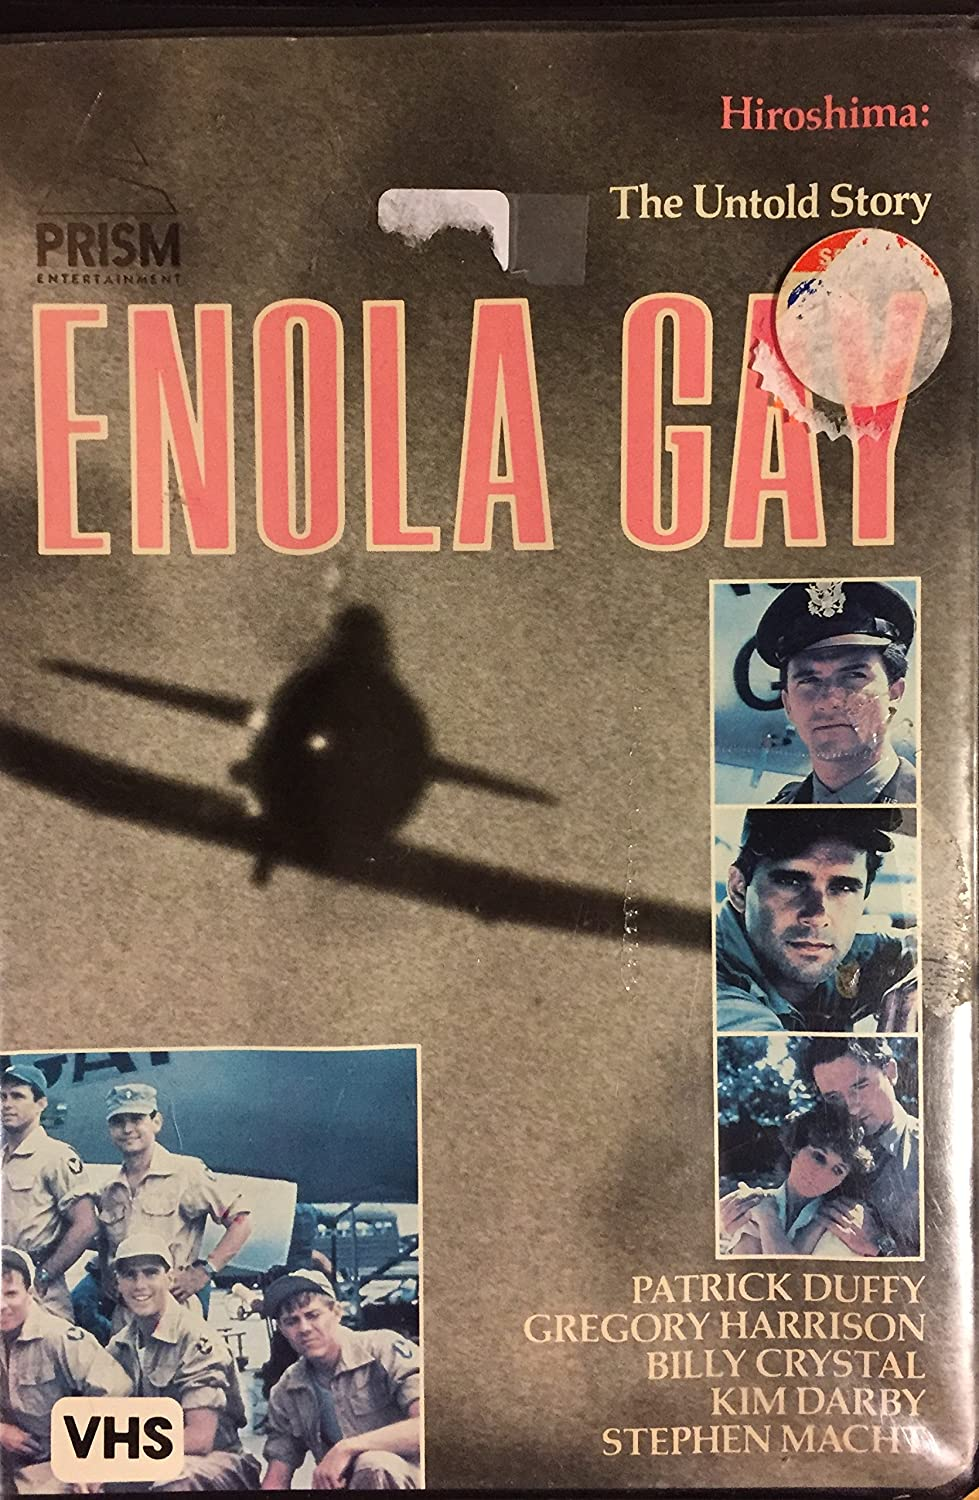 Amazon.com: Enola Gay: The Men, the Mission, the Atomic Bomb: David Lowell  Rich, Billy Crystal, Patrick Duffy, Kim Darby, Gregory Harrison: Movies & TV